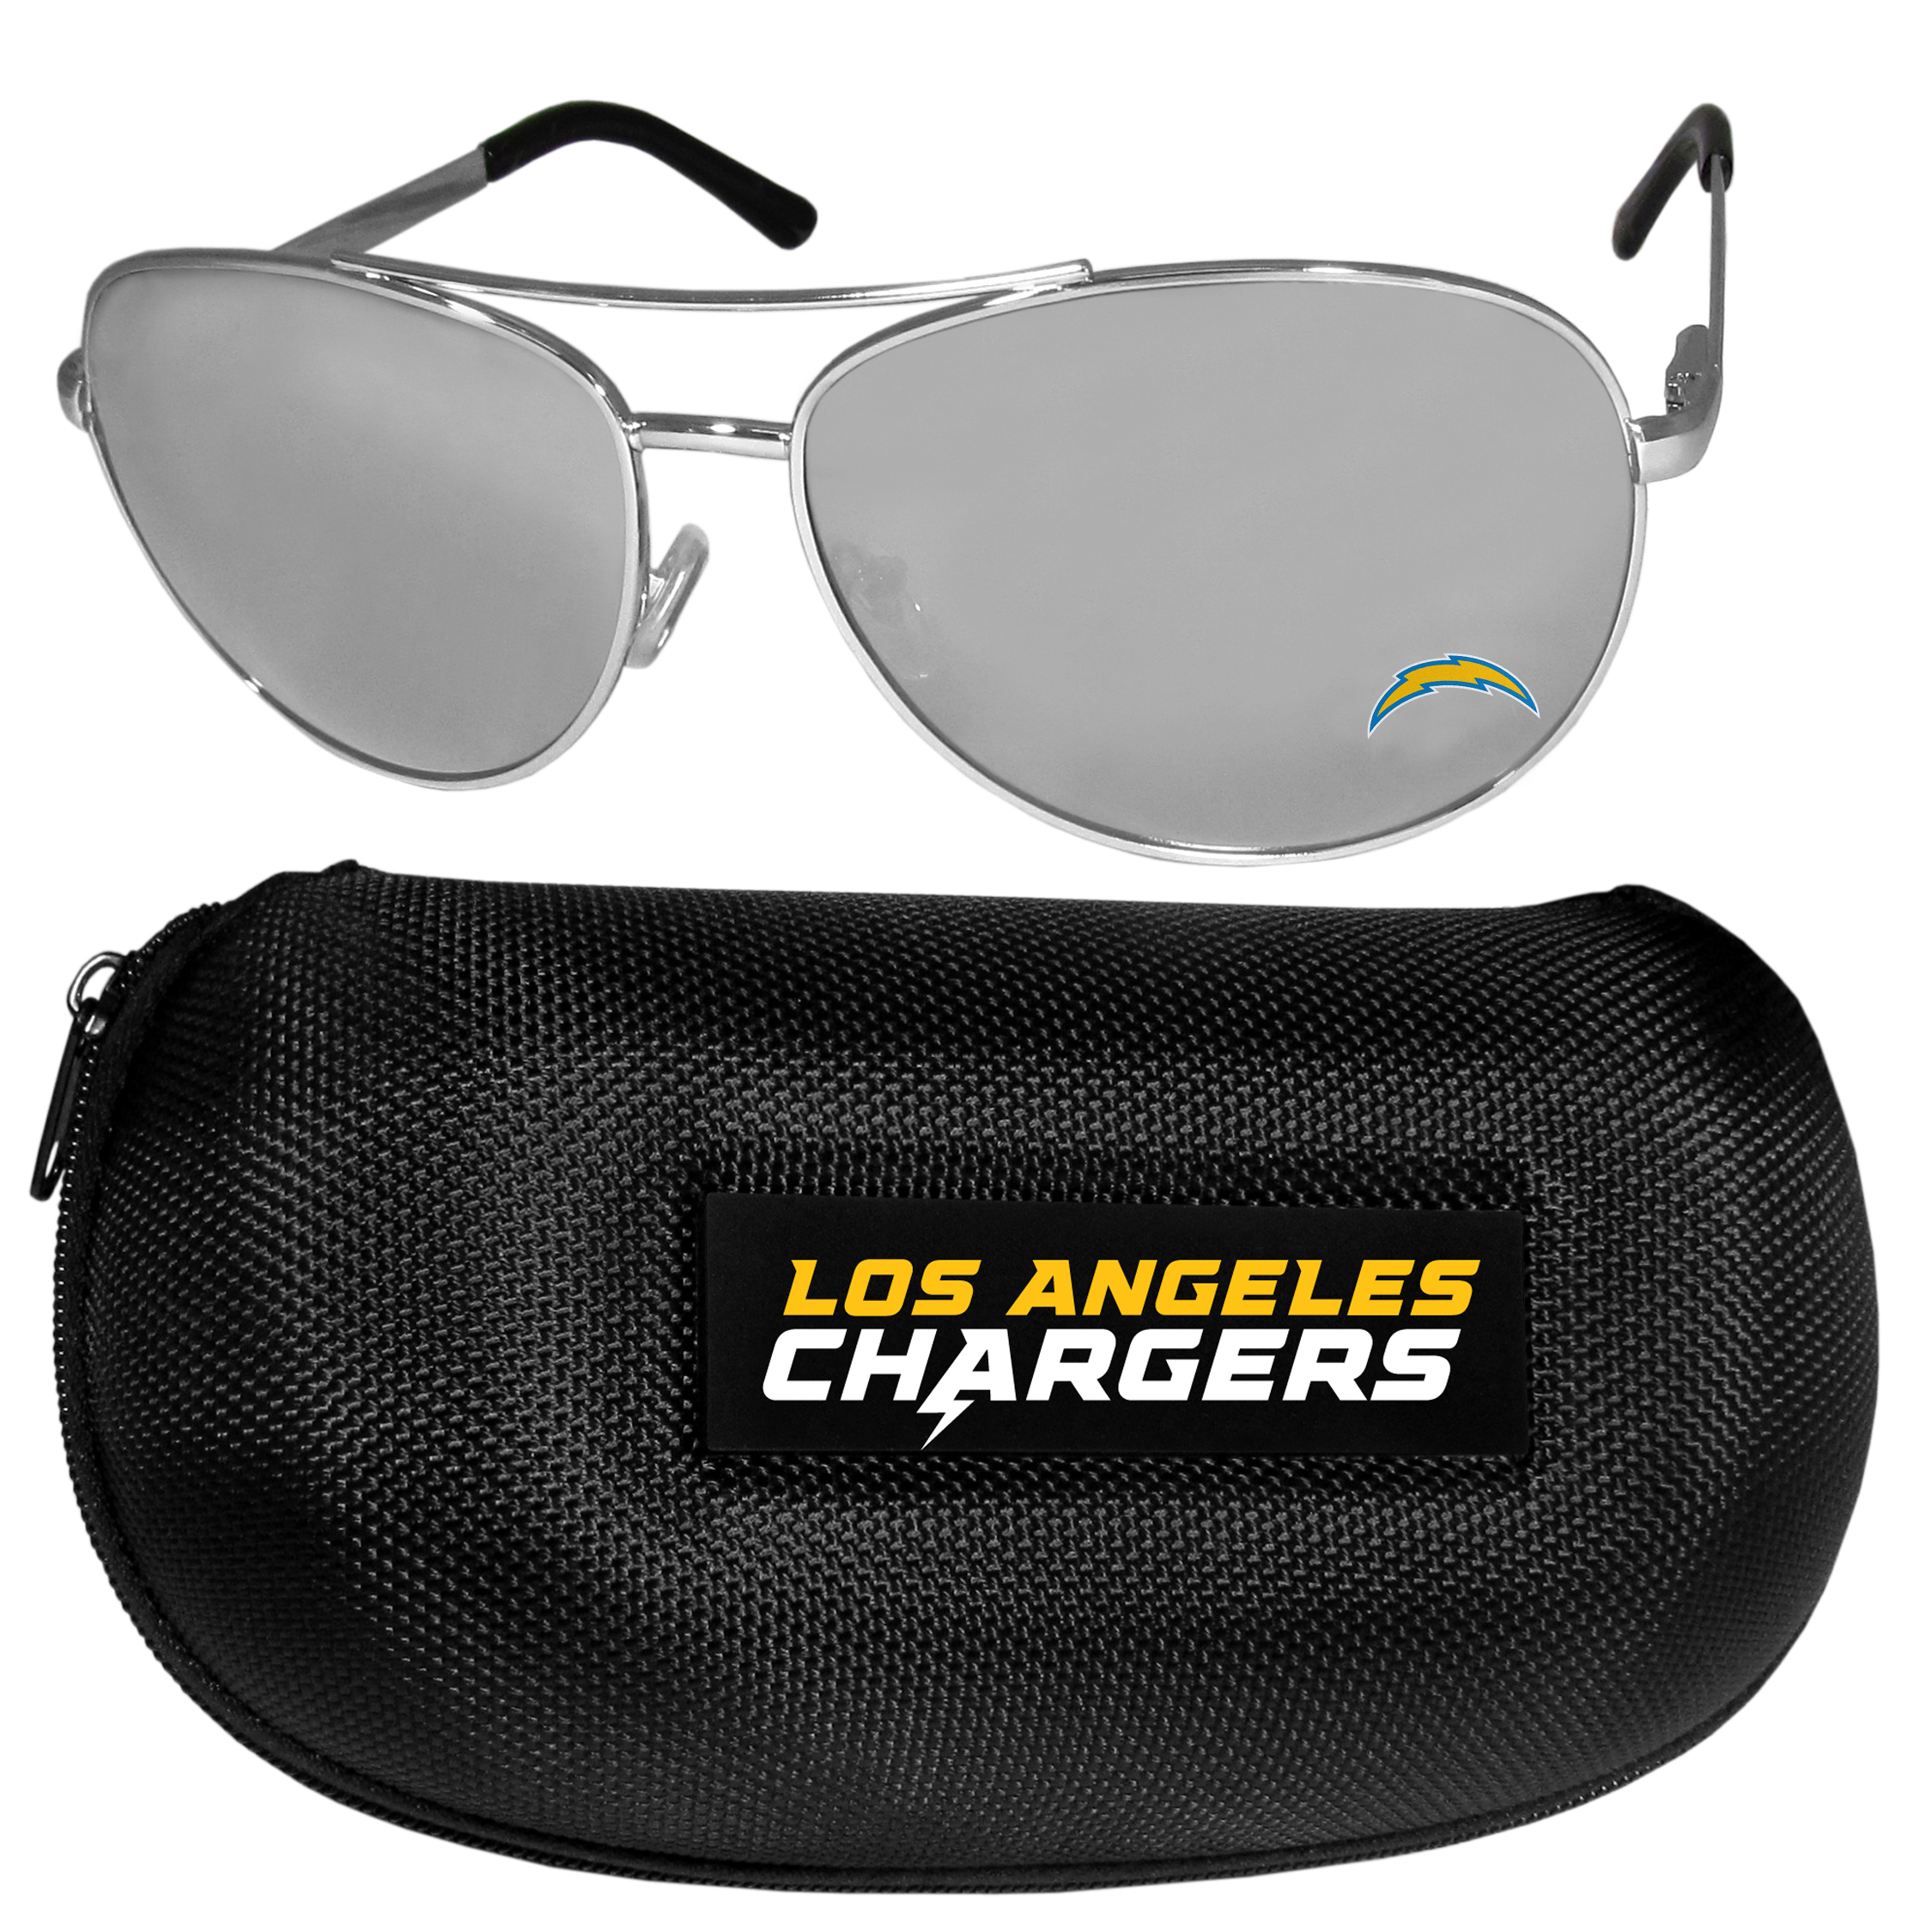 Los Angeles Chargers Aviator Sunglasses and Zippered Carrying Case - Aviator sunglasses are truly an iconic retro fashion statement that never goes out-of-style. Our Los Angeles Chargers  aviator sunglasses pair this classic look with your love of the game. The iridium coated lenses reduce glare while driving, boating, golfing and their 100% UVA/UVB rating provides you with the maximum UV protection for all your outdoor activities. A millennial favorite, these affordable designer frames are the perfect eyewear accessory for a sports fan that is looking for high-quality at an affordable price. The durable, flex hinged frames are tough enough for hiking and camping or if you prefer sun bathing by the pool or on the beach these shades will really stand the test of time. The sunglasses come with a hard shell zippered case which has a large team logo on the lid that will make even the most die-hard fan proud!